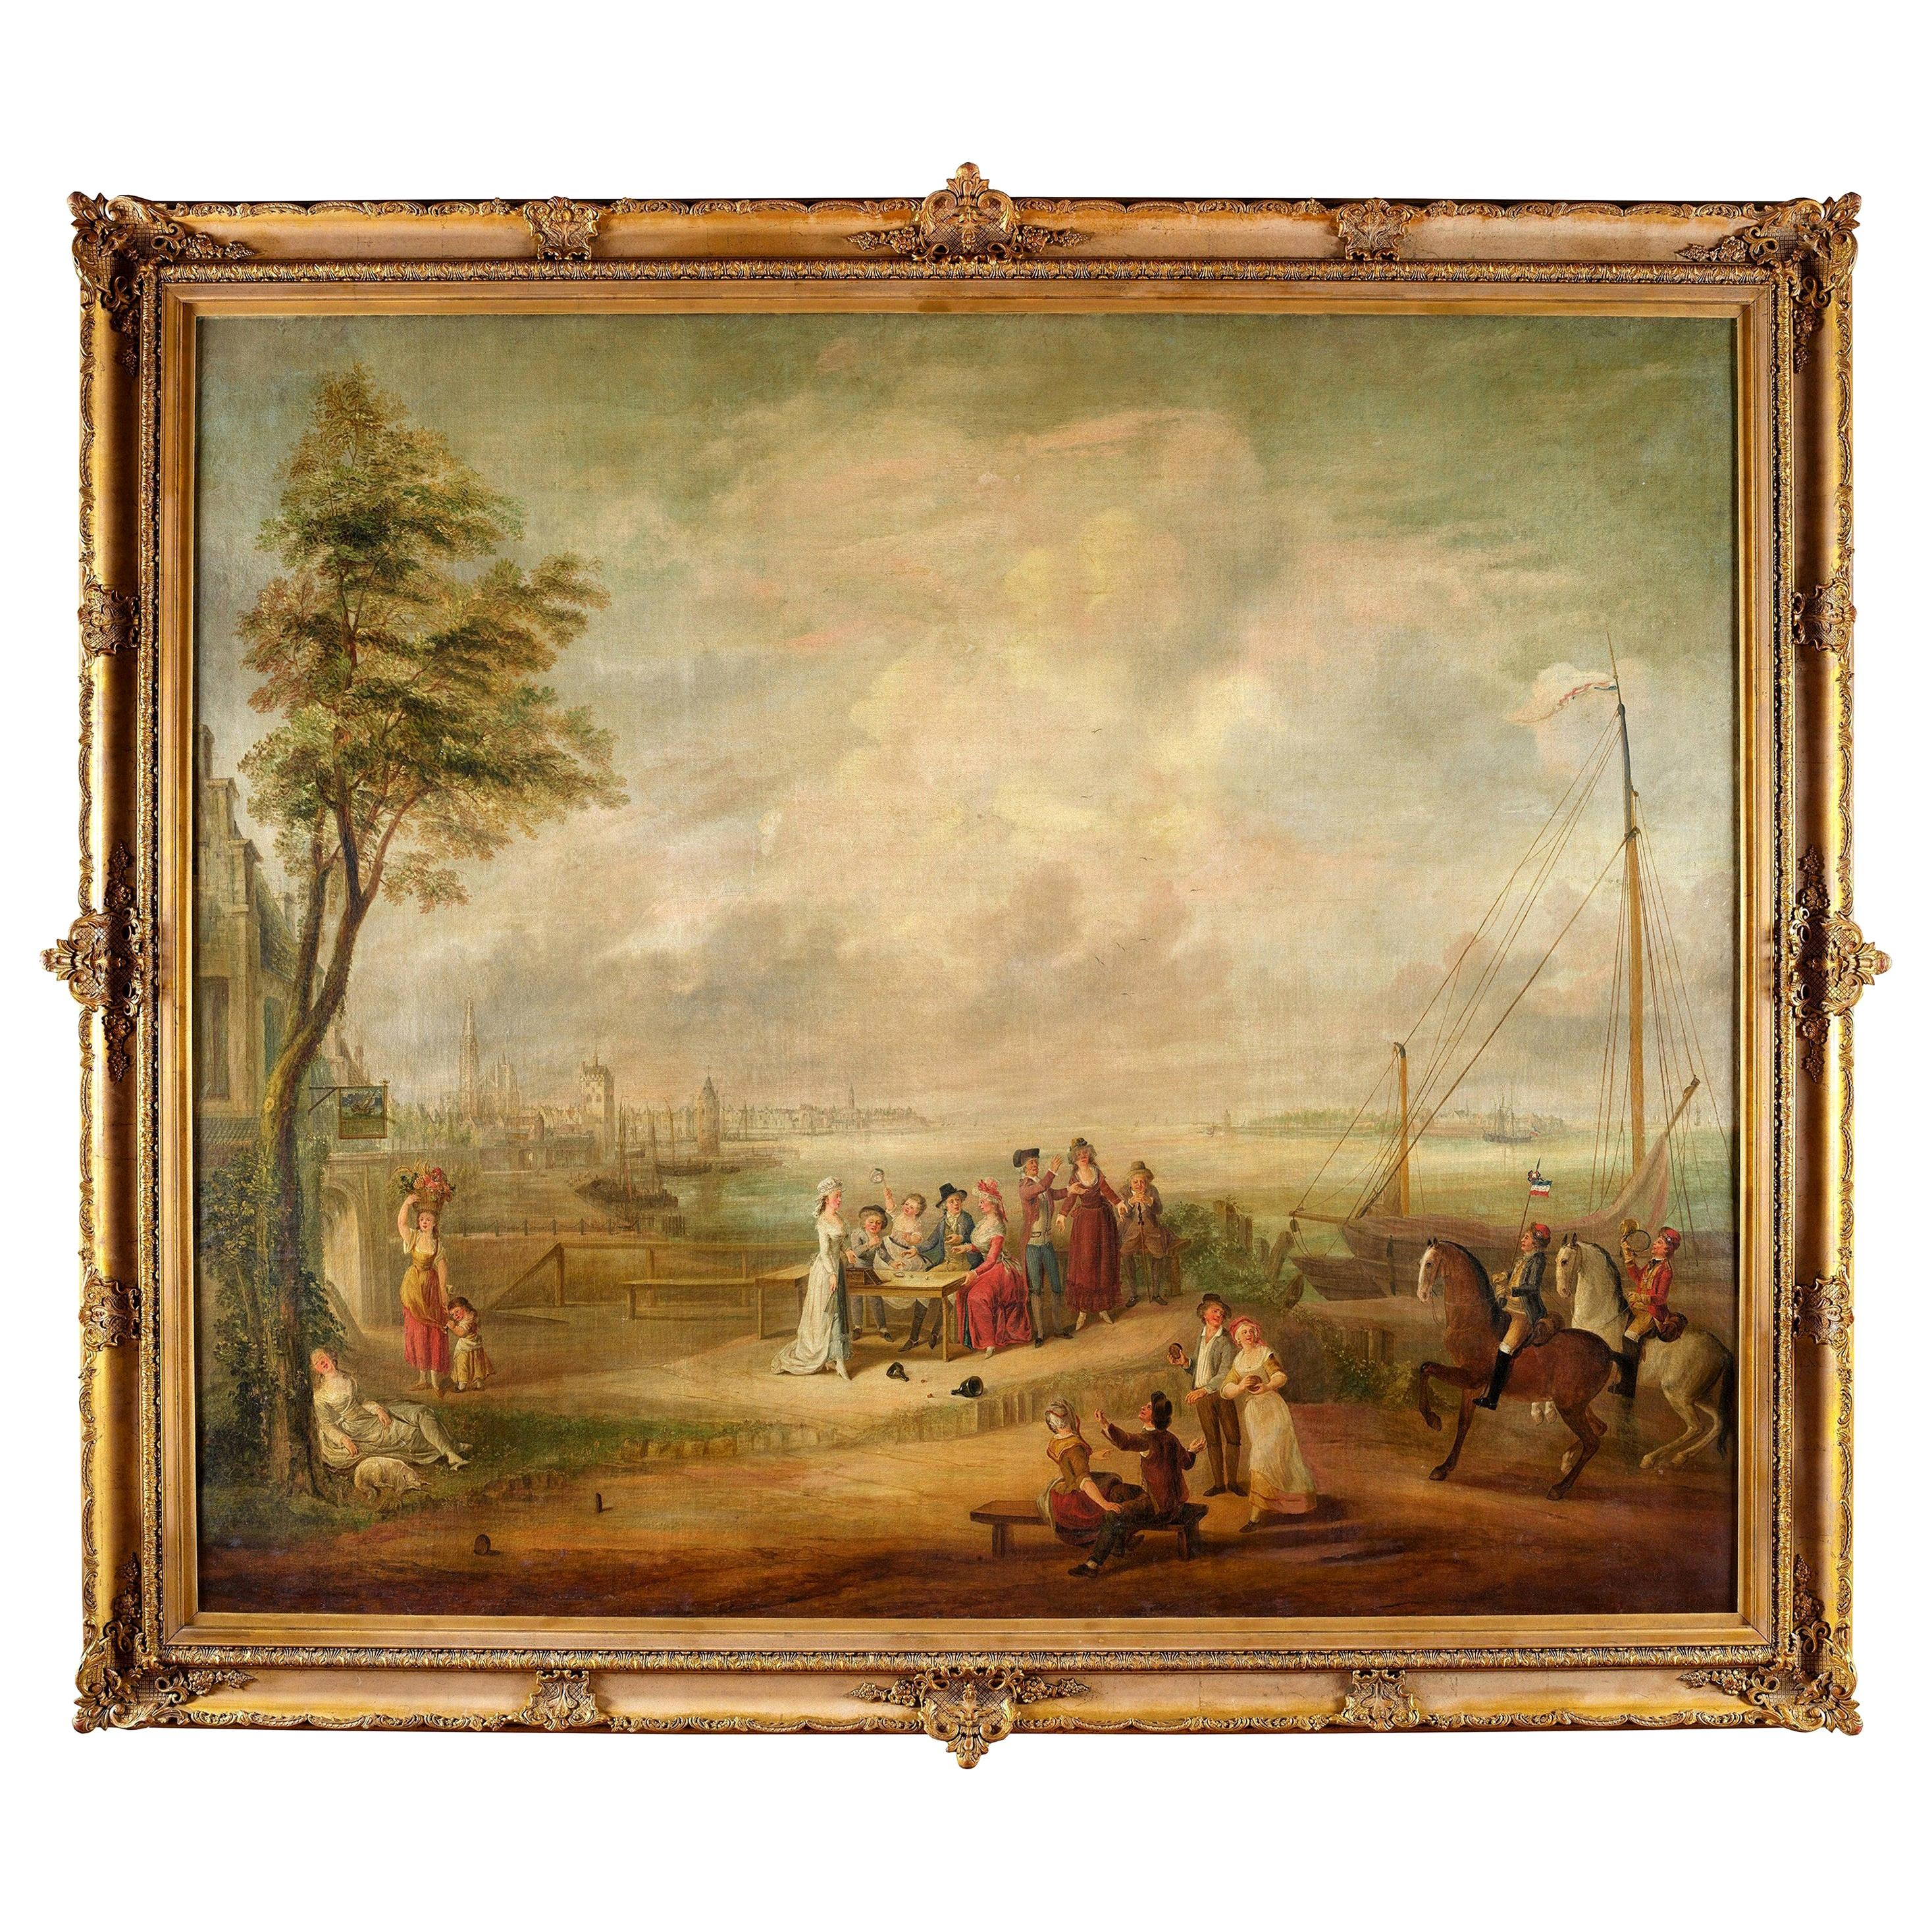 18th Century French Pastoral and Harbor Scene Oil Painting in Ornate Gilt Frame